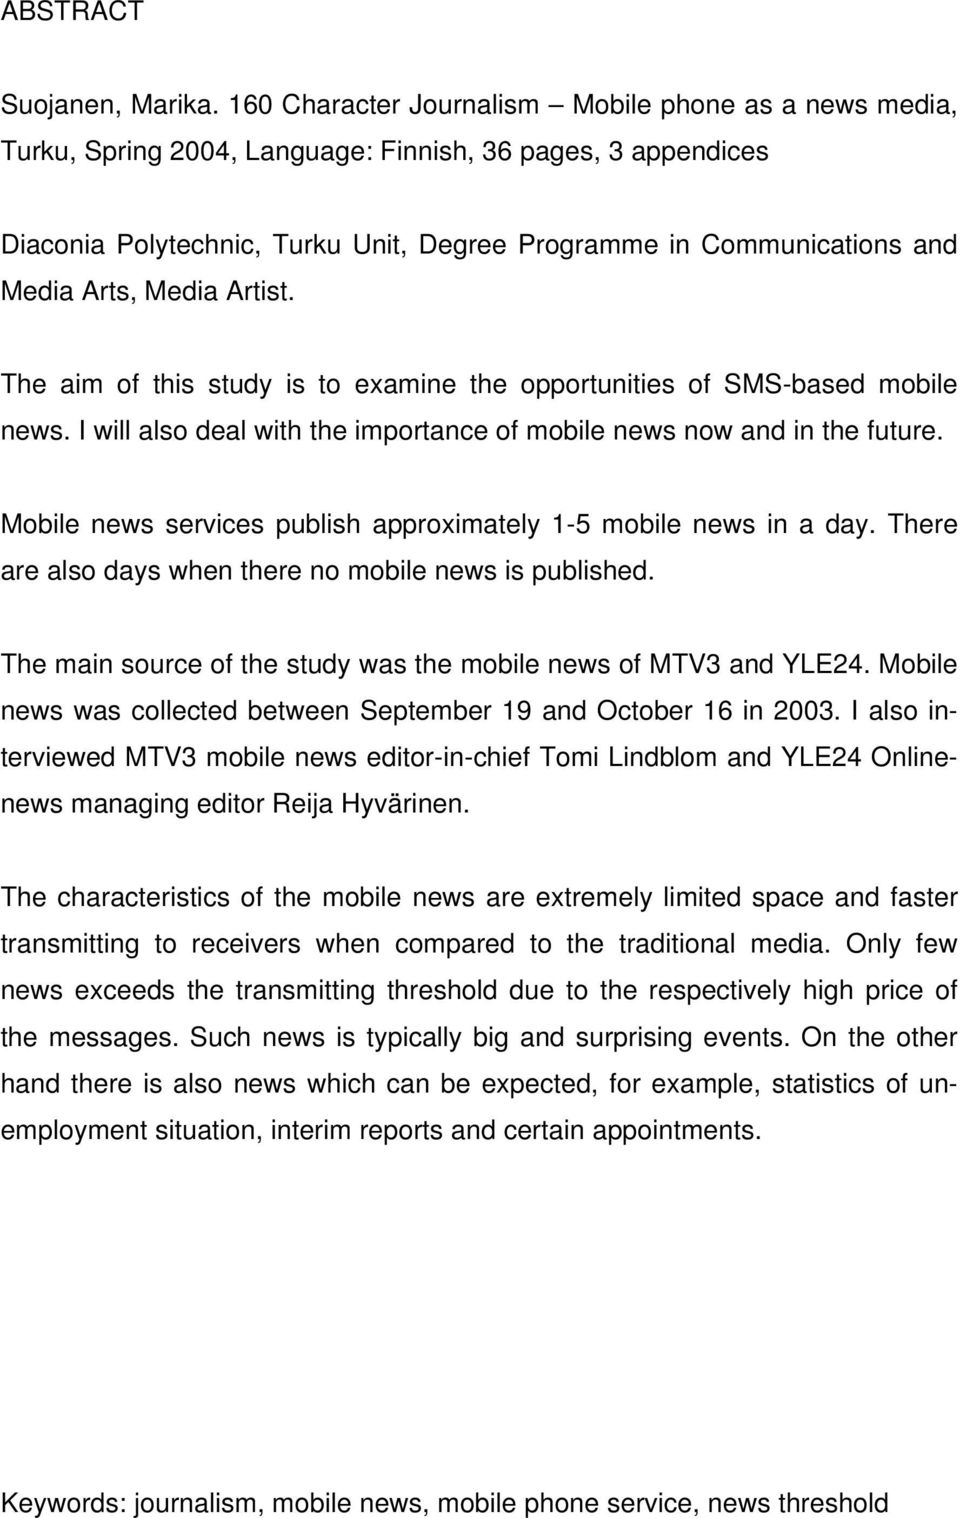 Arts, Media Artist. The aim of this study is to examine the opportunities of SMS-based mobile news. I will also deal with the importance of mobile news now and in the future.